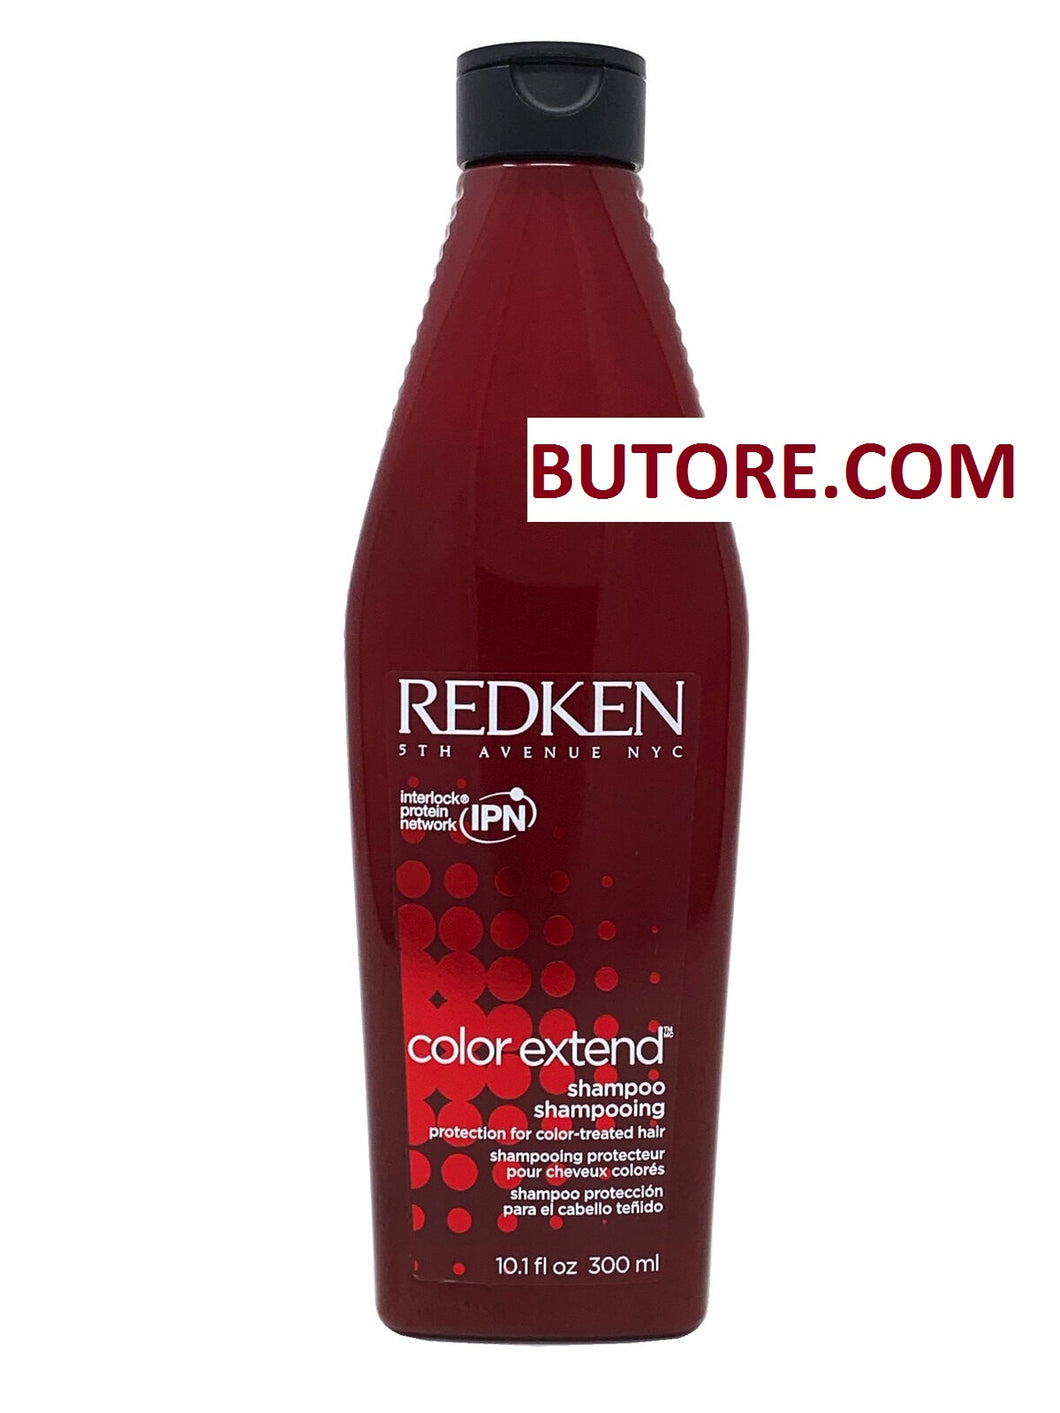 Redken Color Extend Shampoo 10.1 oz